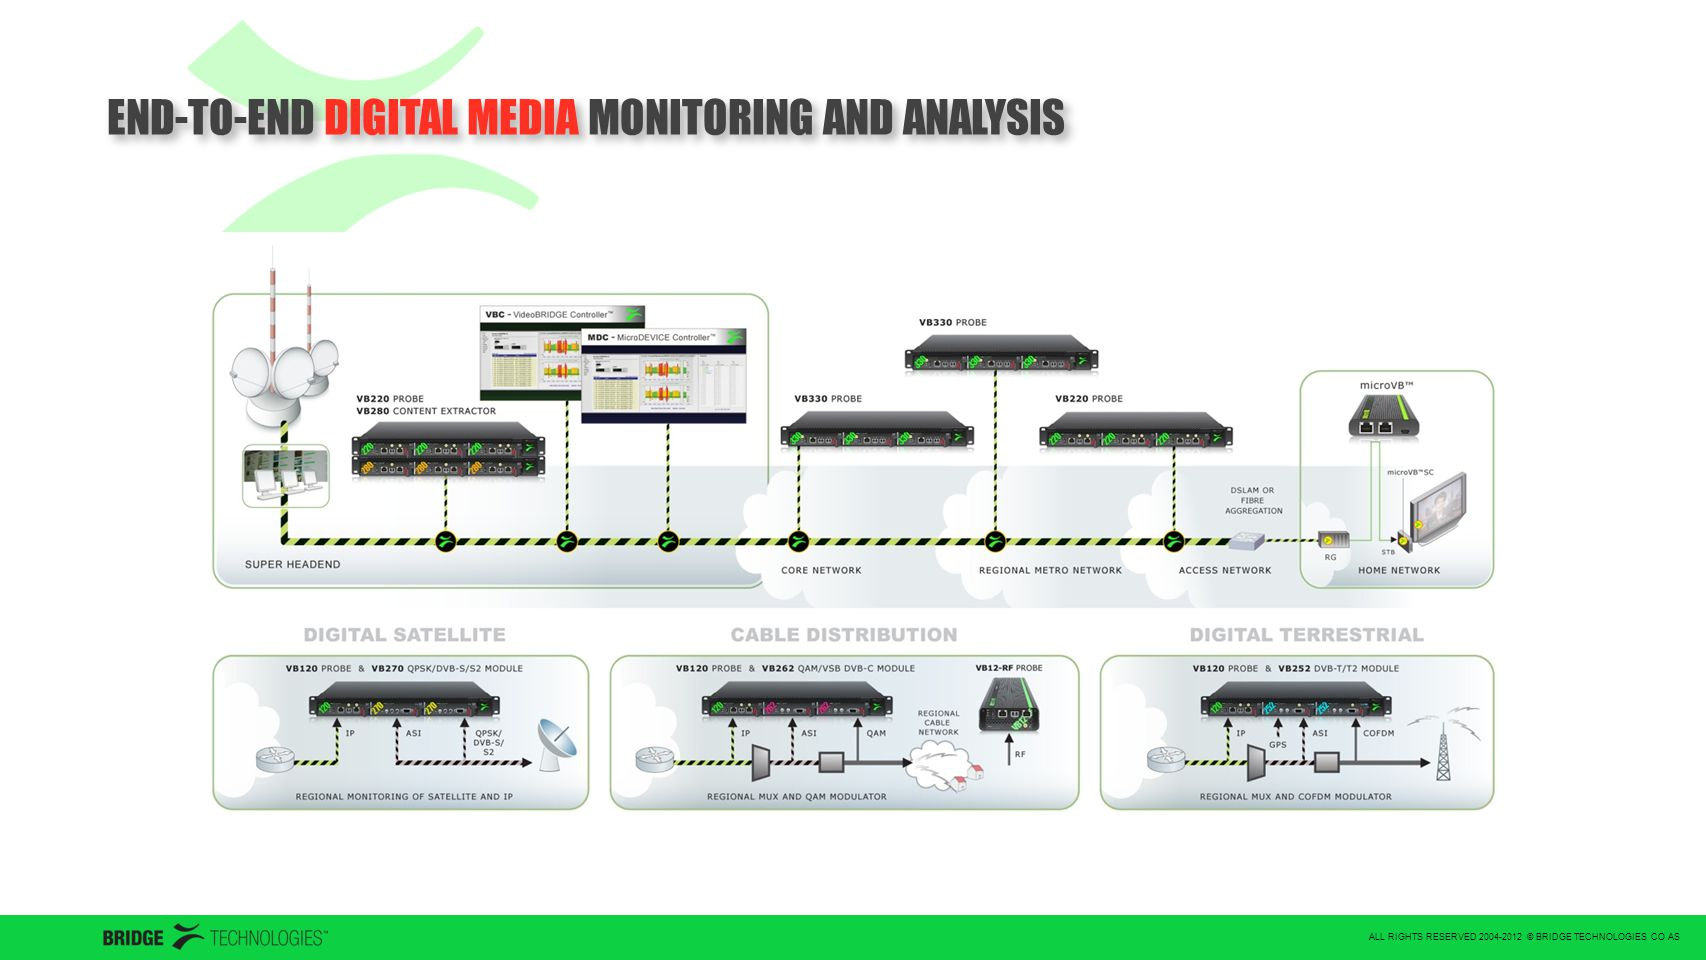 ALL RIGHTS RESERVED 2004-2012 © BRIDGE TECHNOLOGIES CO AS END-TO-END DIGITAL MEDIA MONITORING AND ANALYSIS